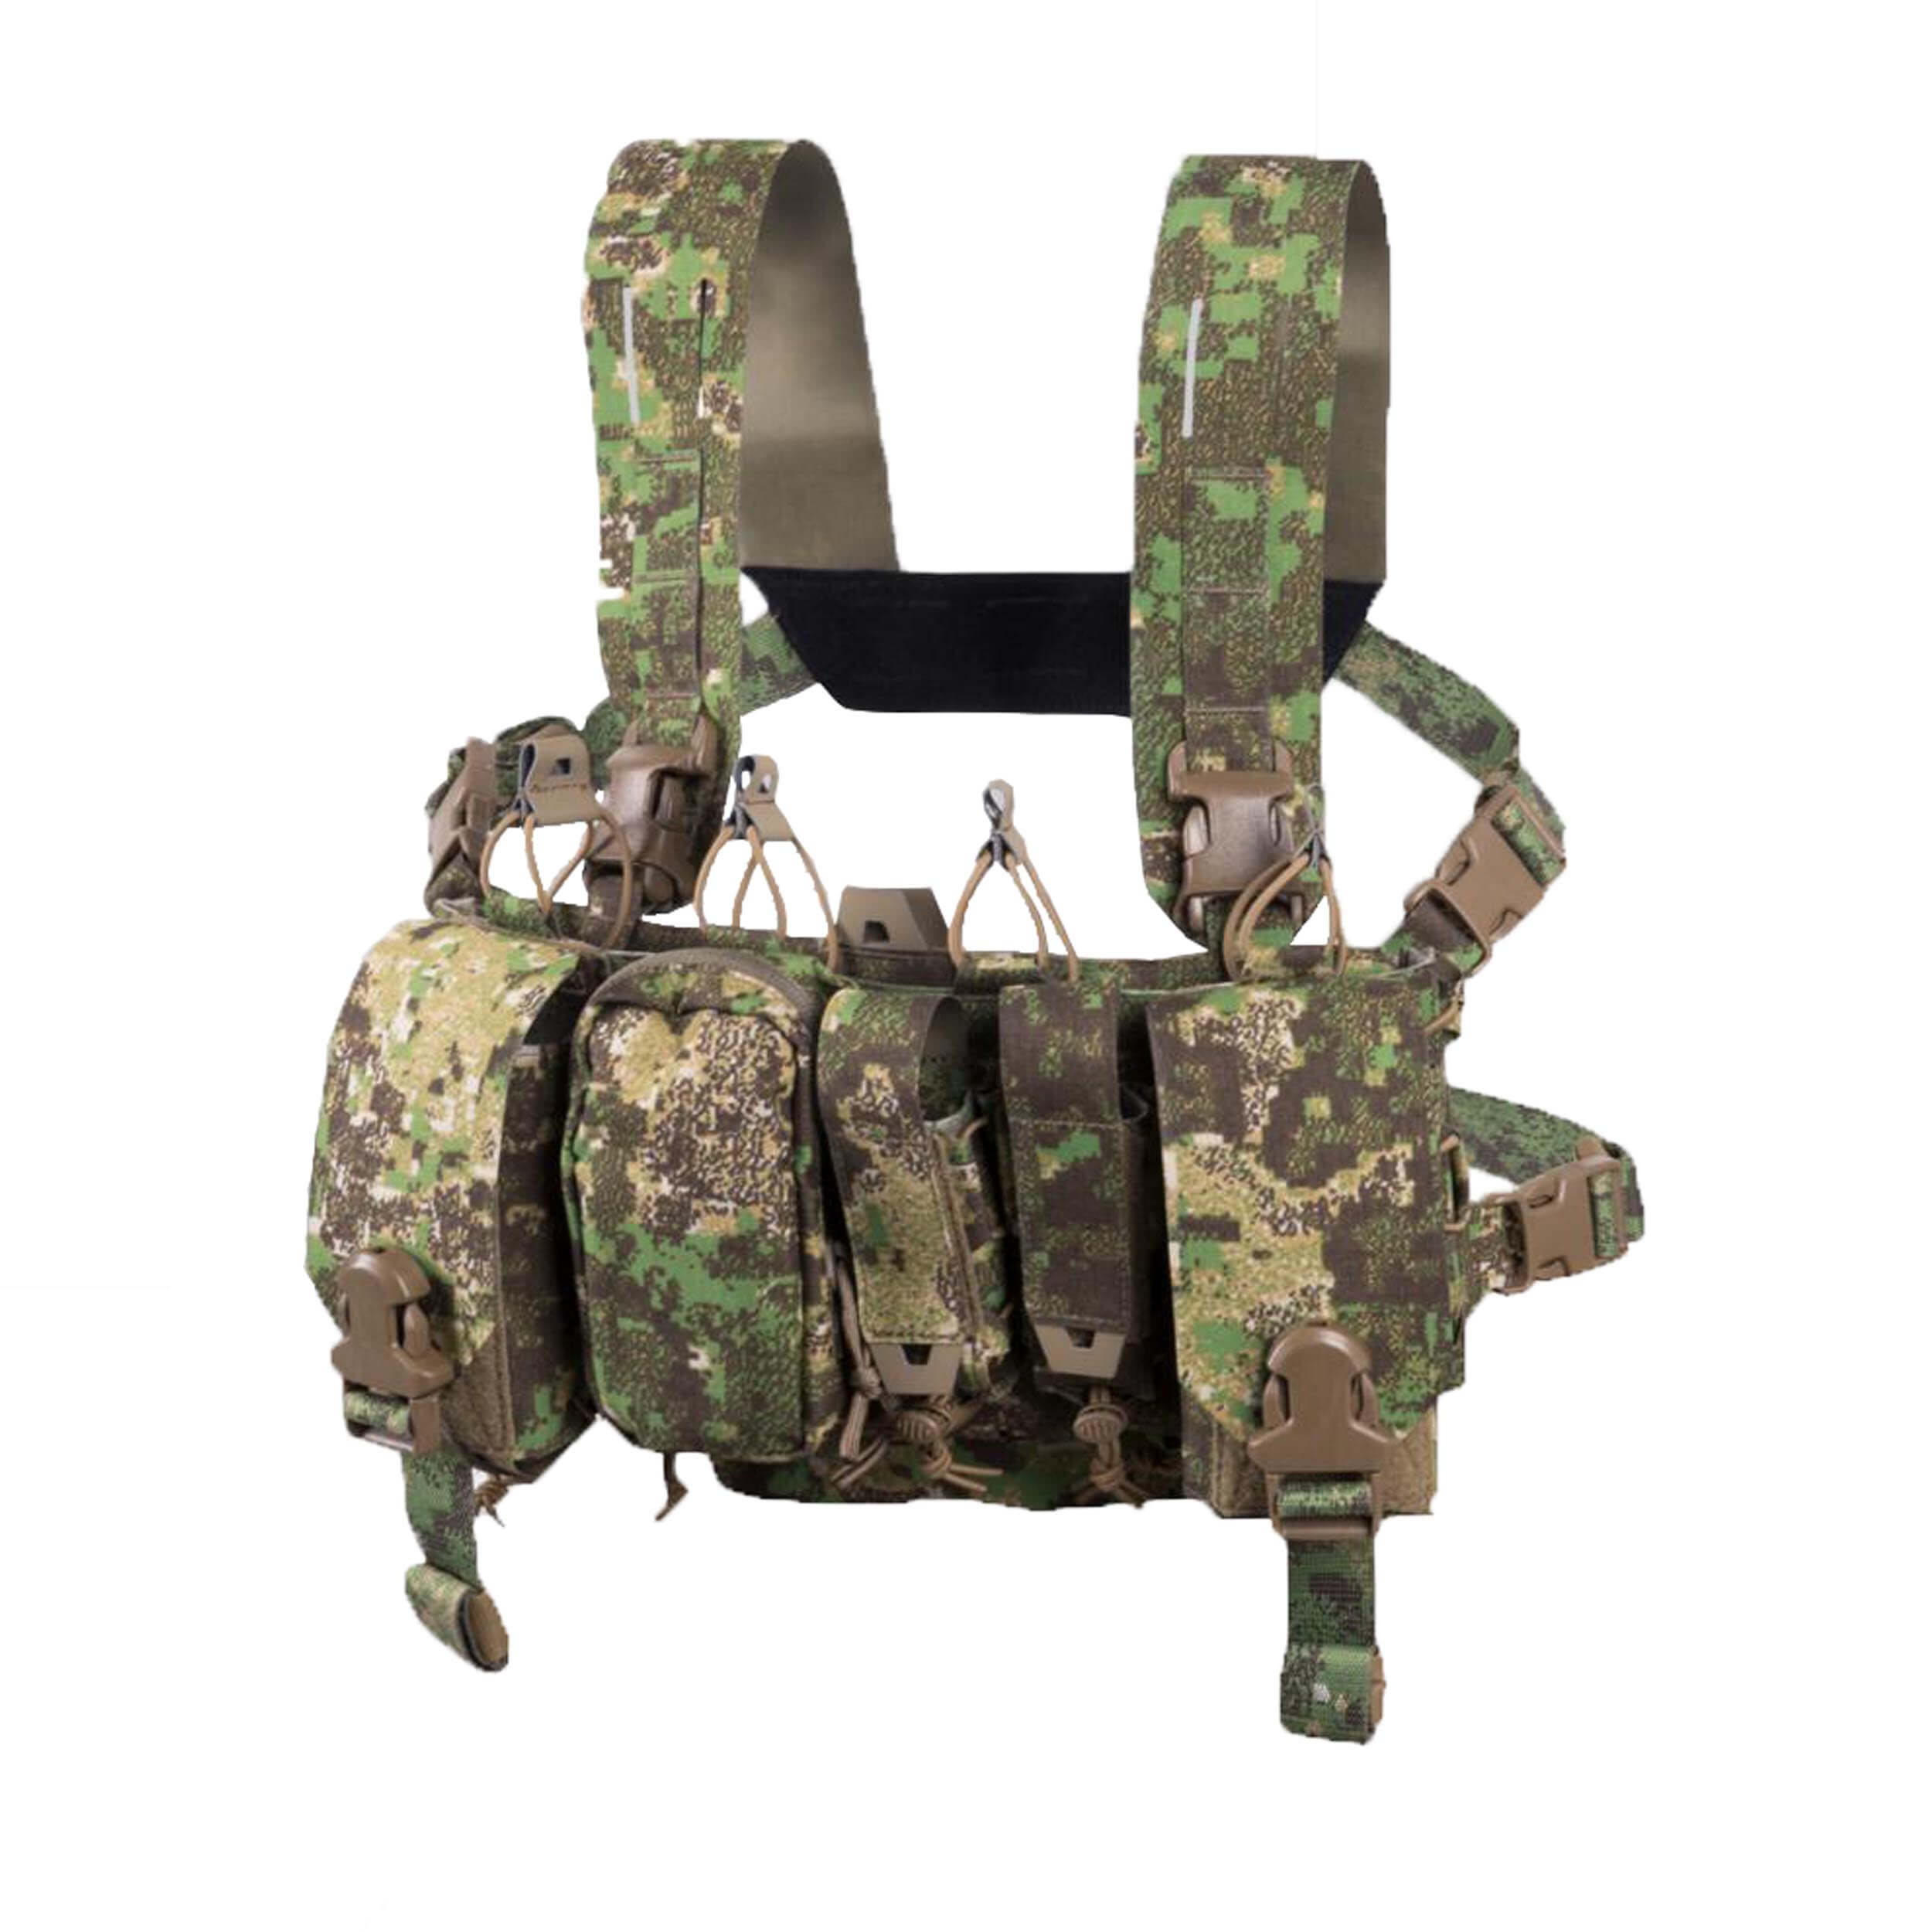 Direct Action Thunderbolt Compact Chest Rig - Cordura - PenCott Greenzone